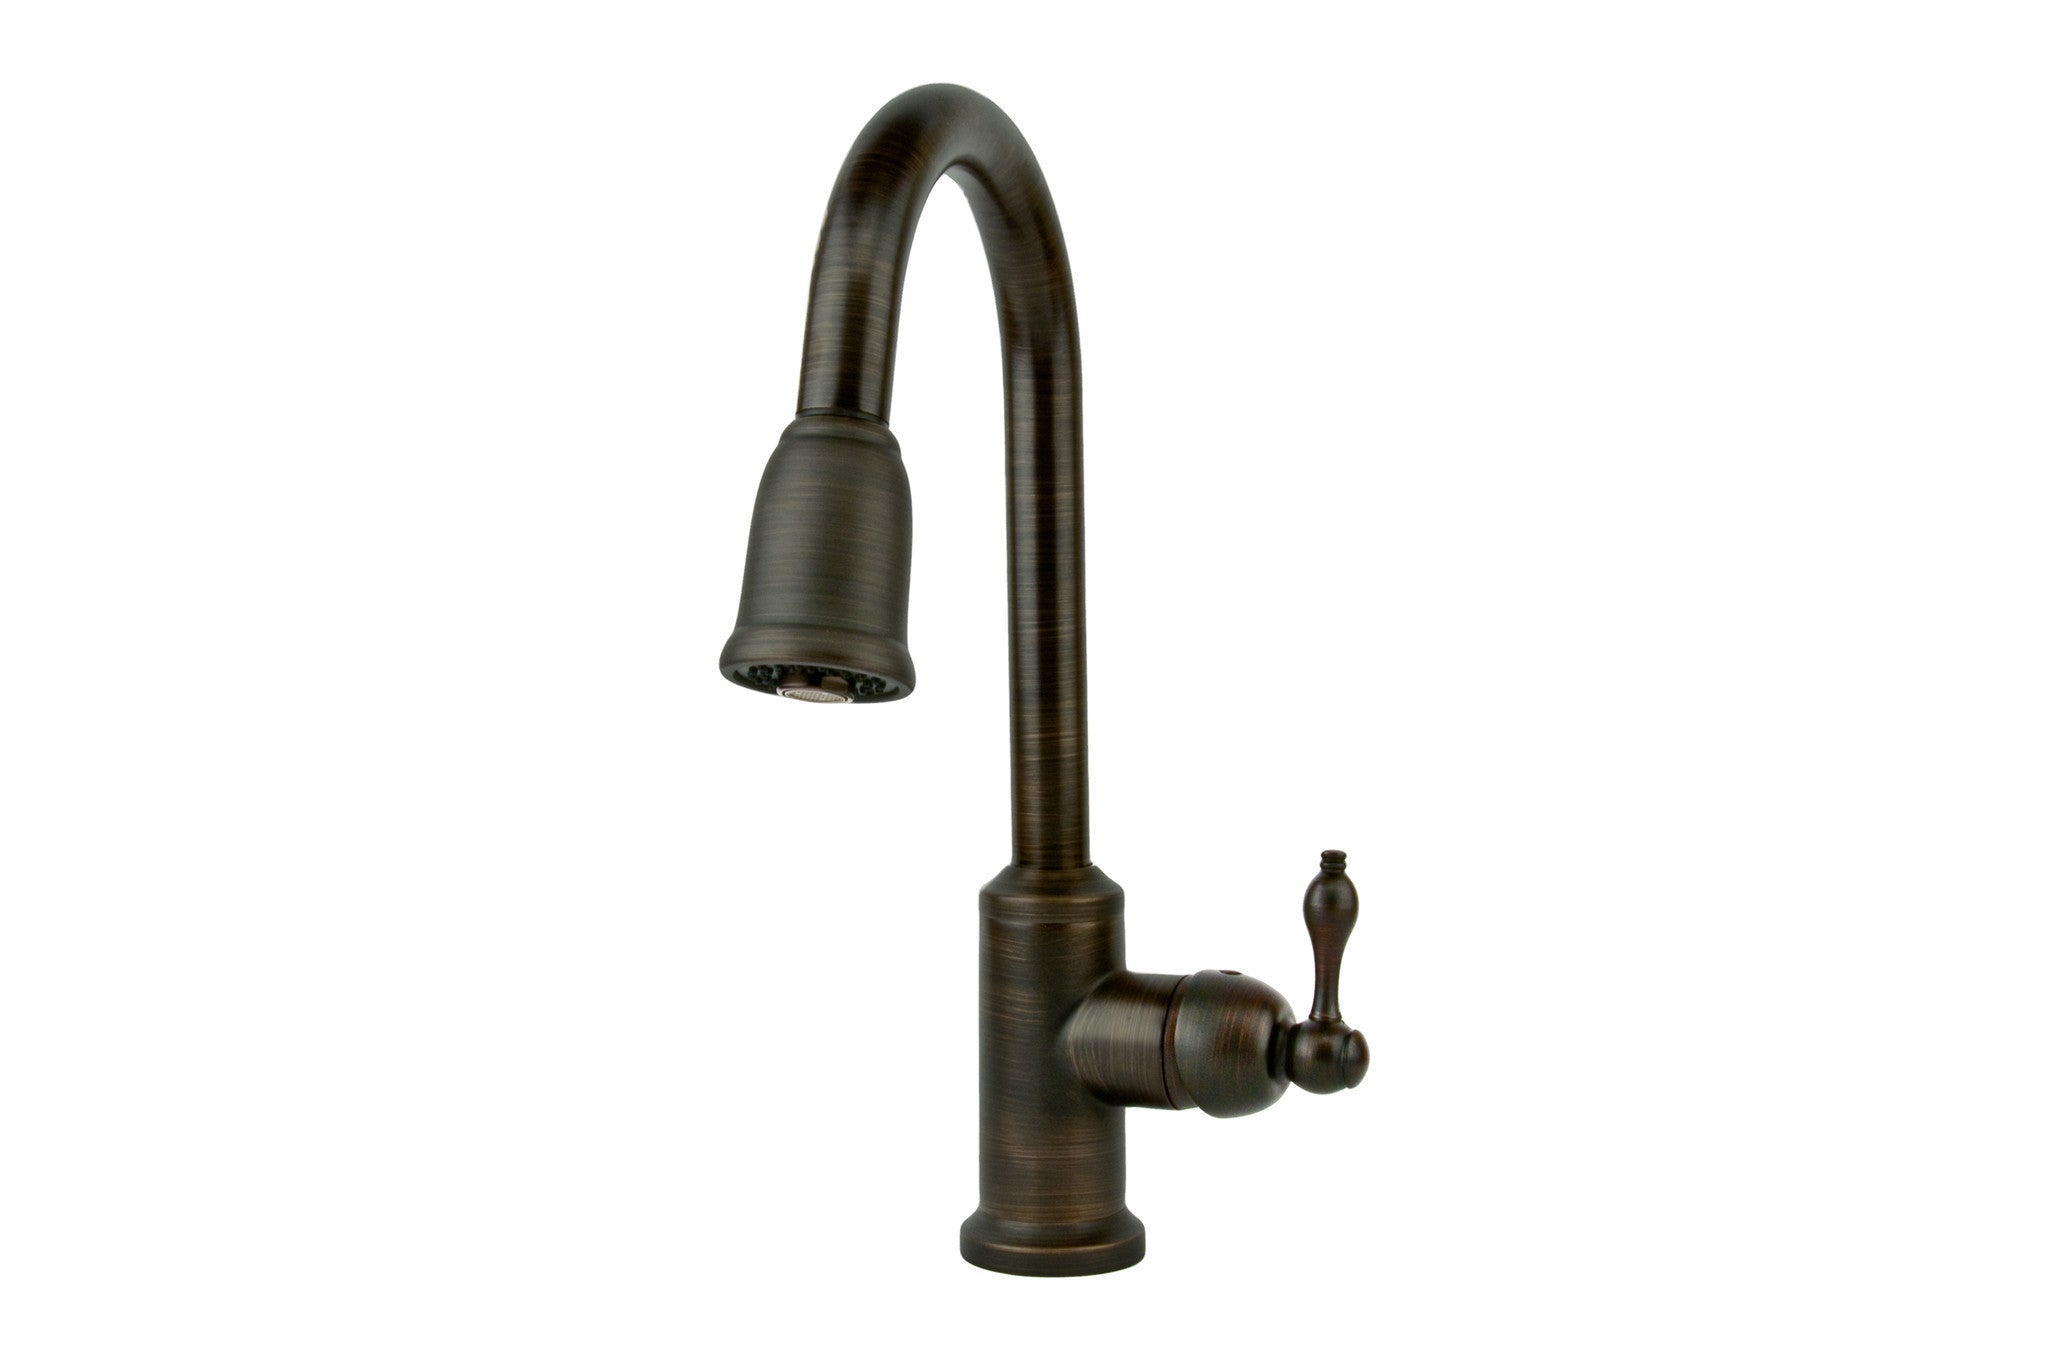 new awesome antique widespread k i pictures handles sink faucet photos inspirational kohler faucets of kelston bathroom